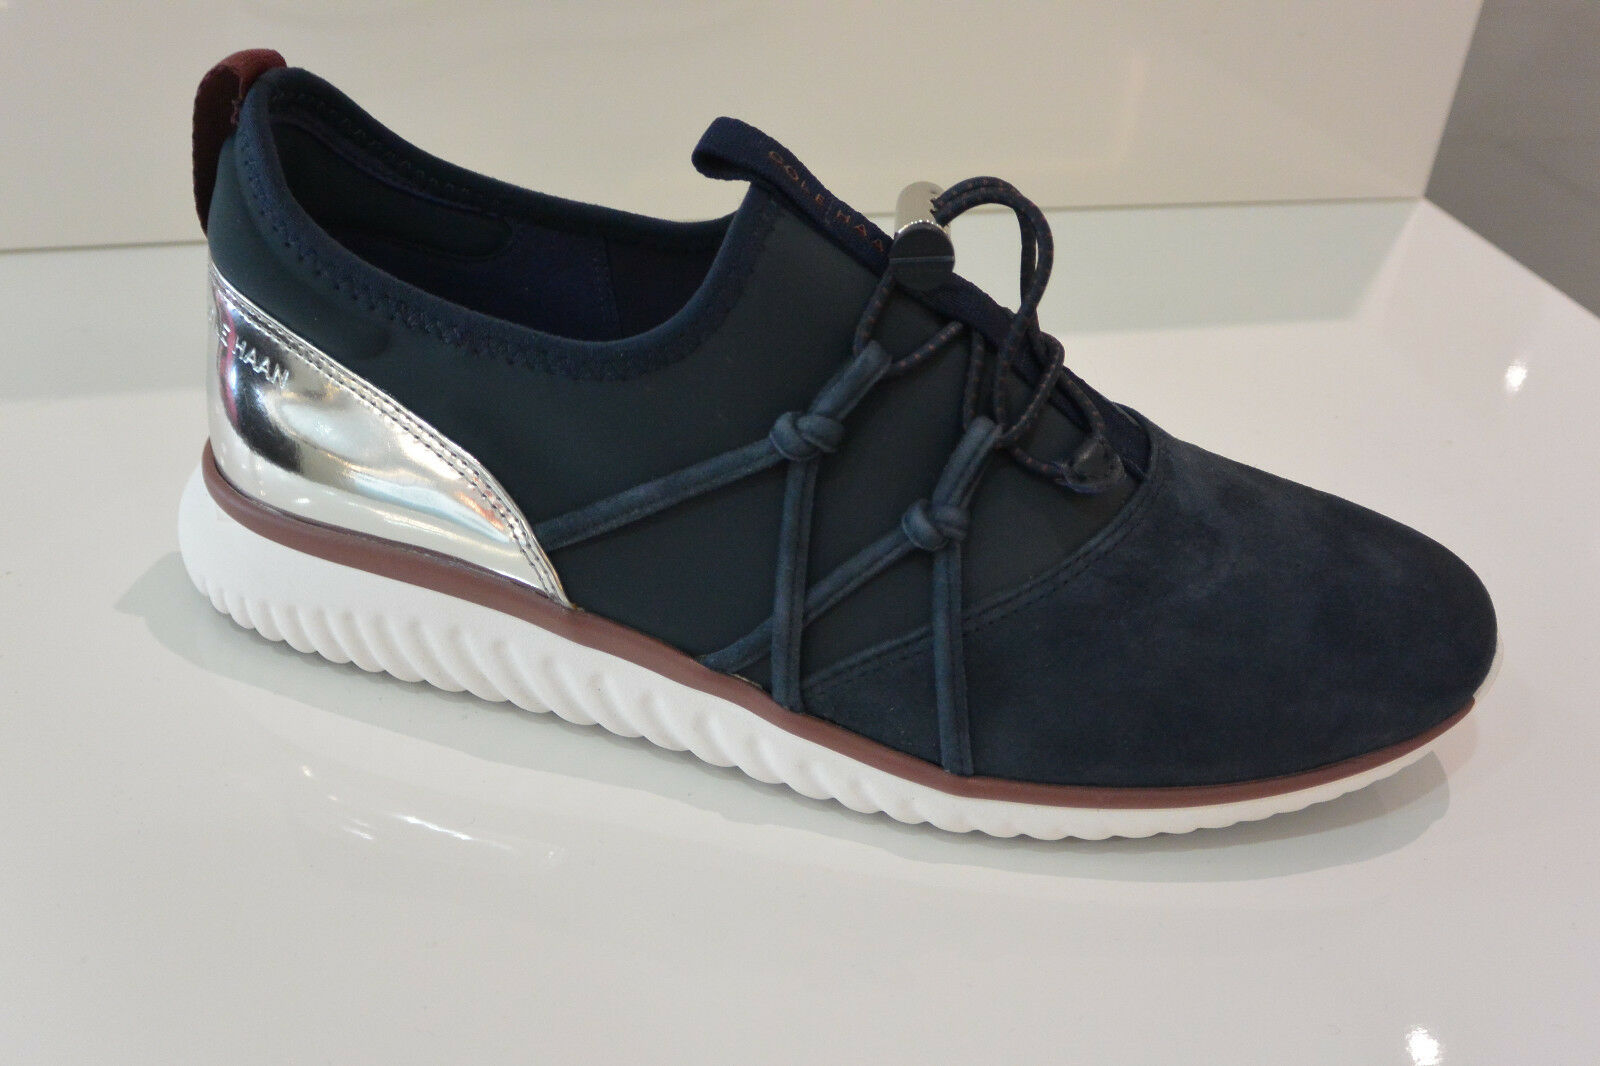 NIB Women's Cole Haan Studiogrand Leather Suede Fashion Sneakers in Navy W12368